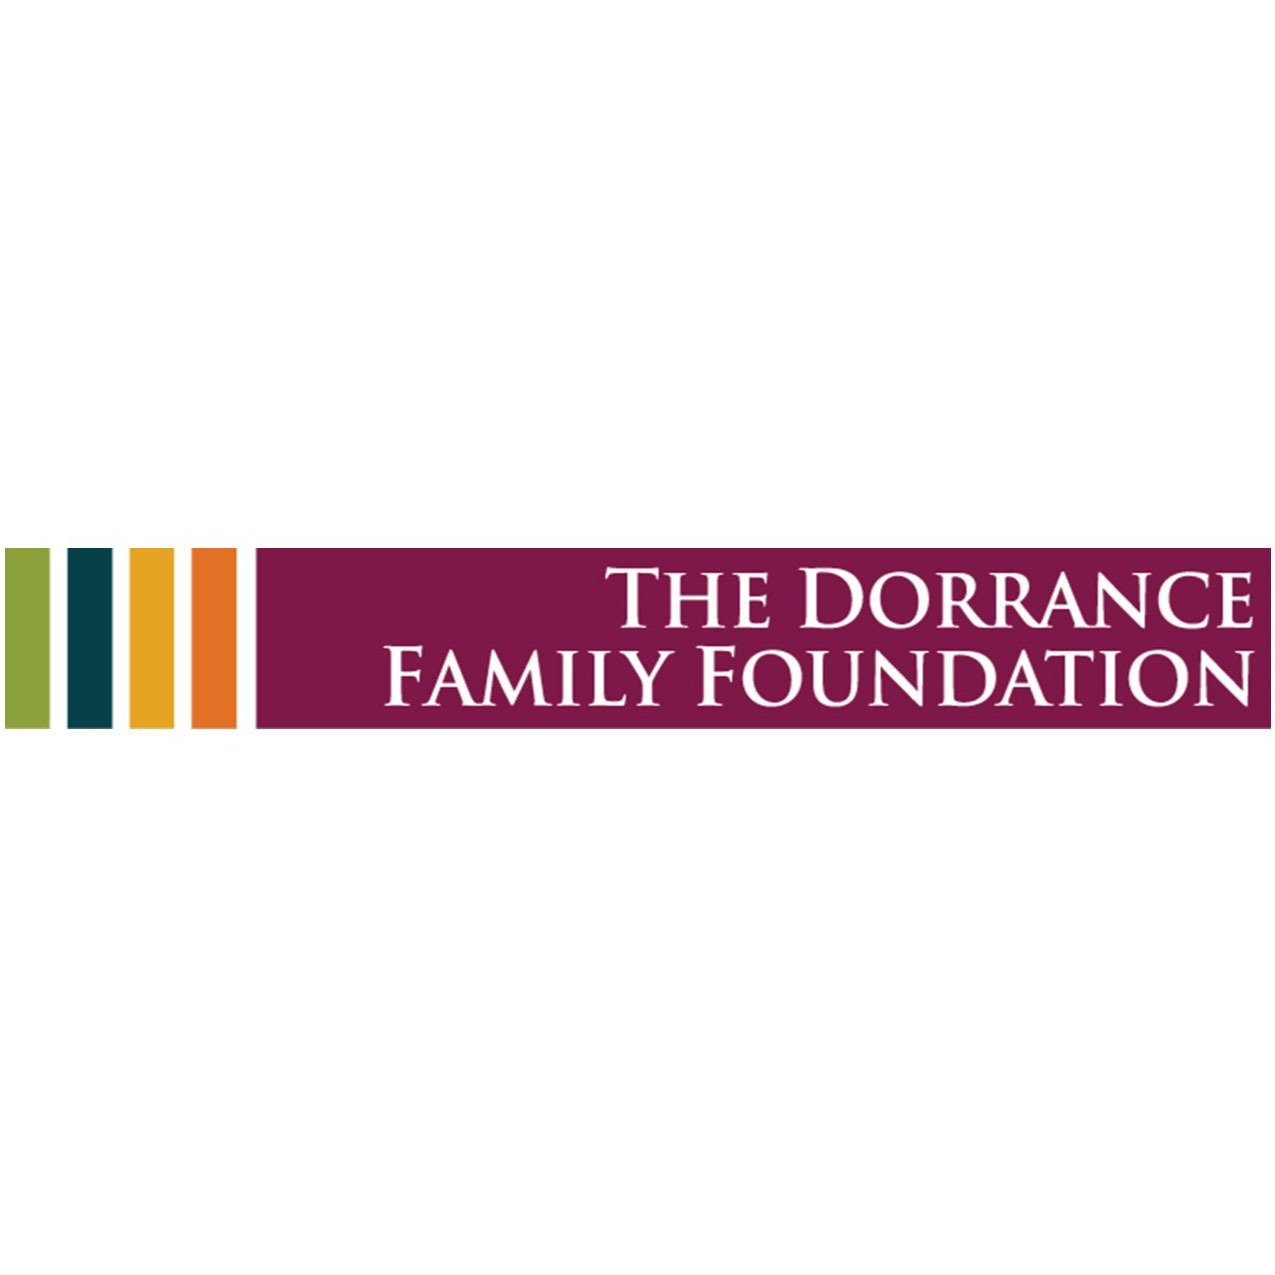 The Dorrance Family Foundation